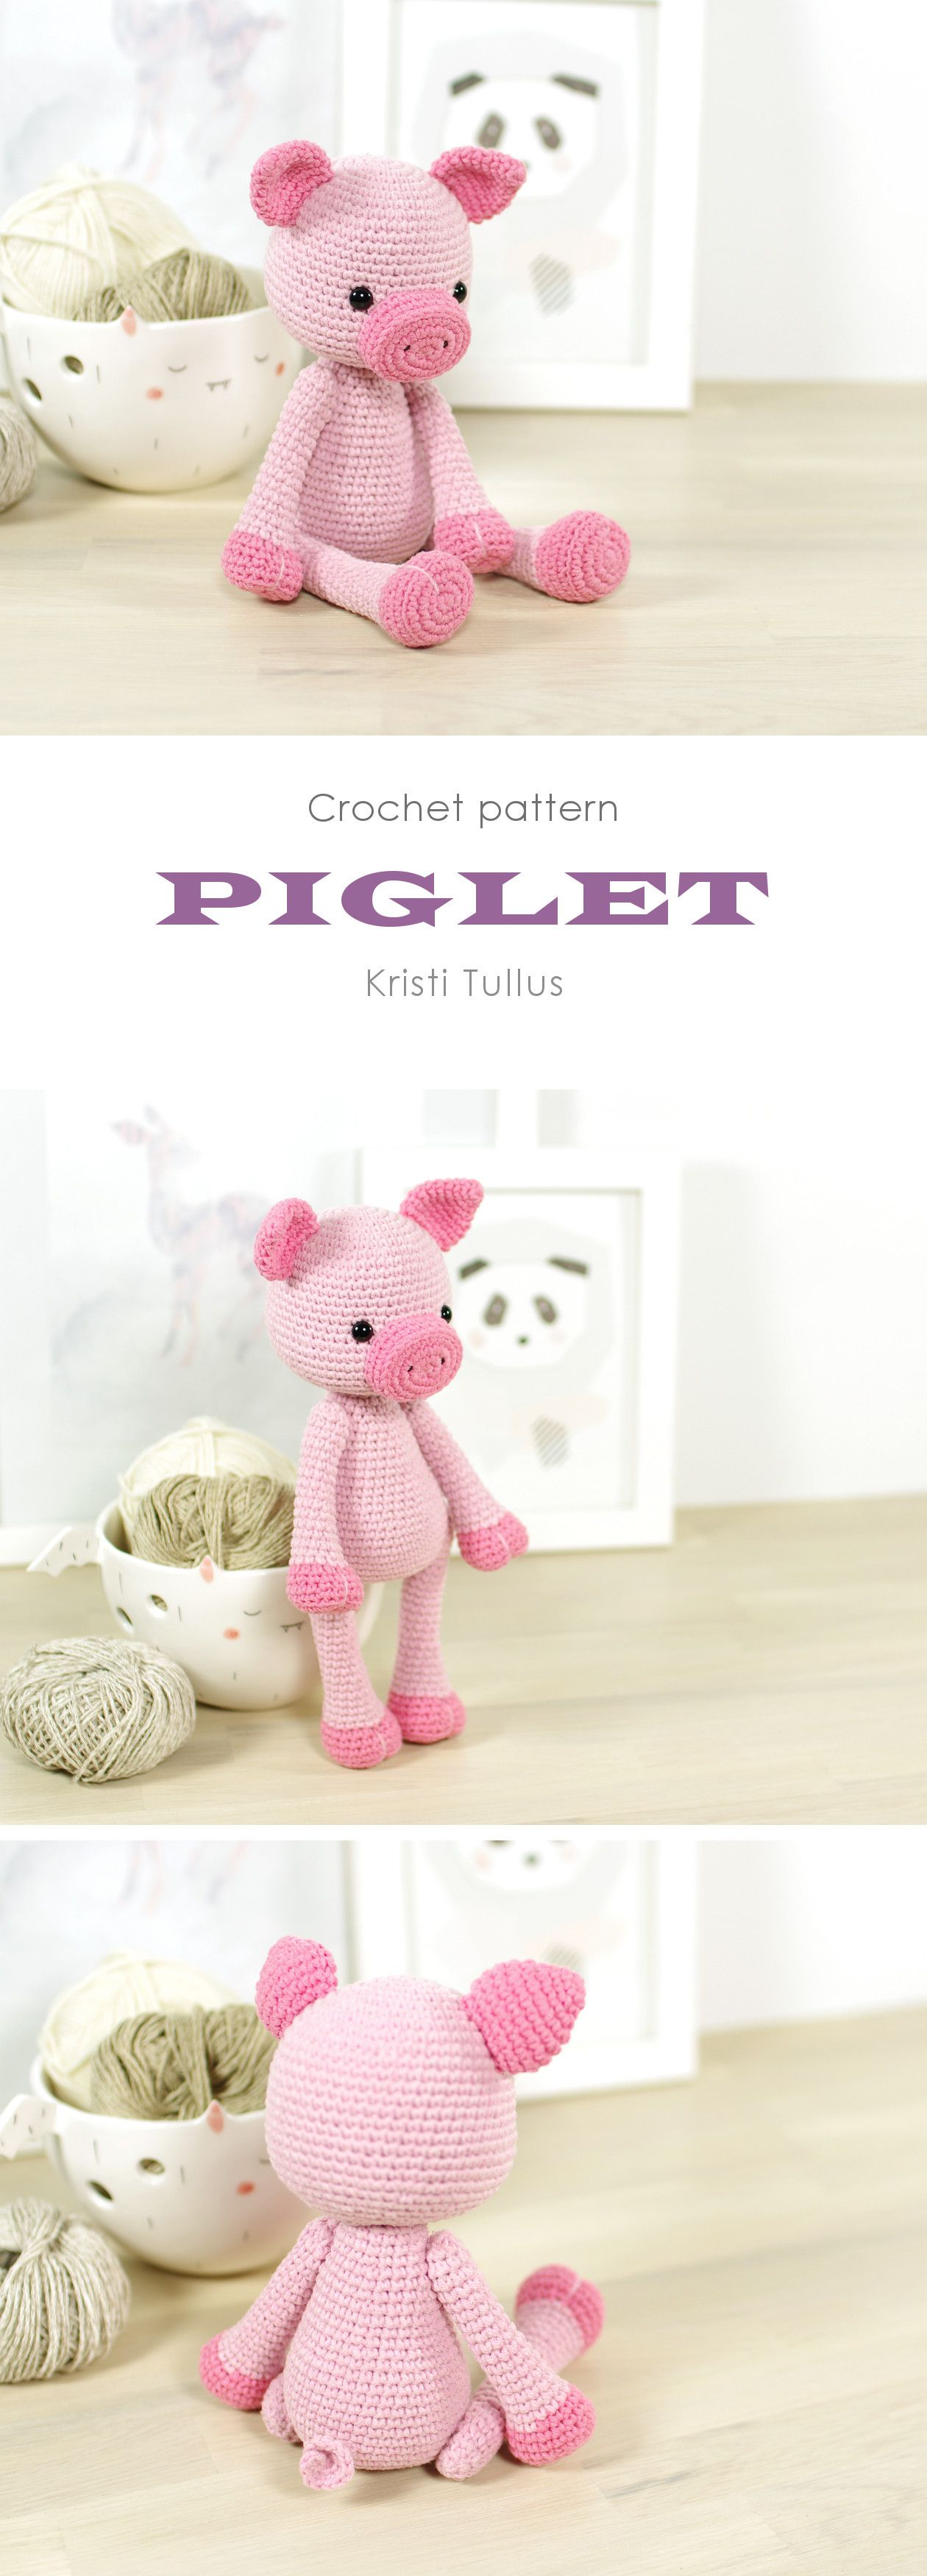 Crochet pattern: 4-way jointed pig // Kristi Tullus (spire.ee ...